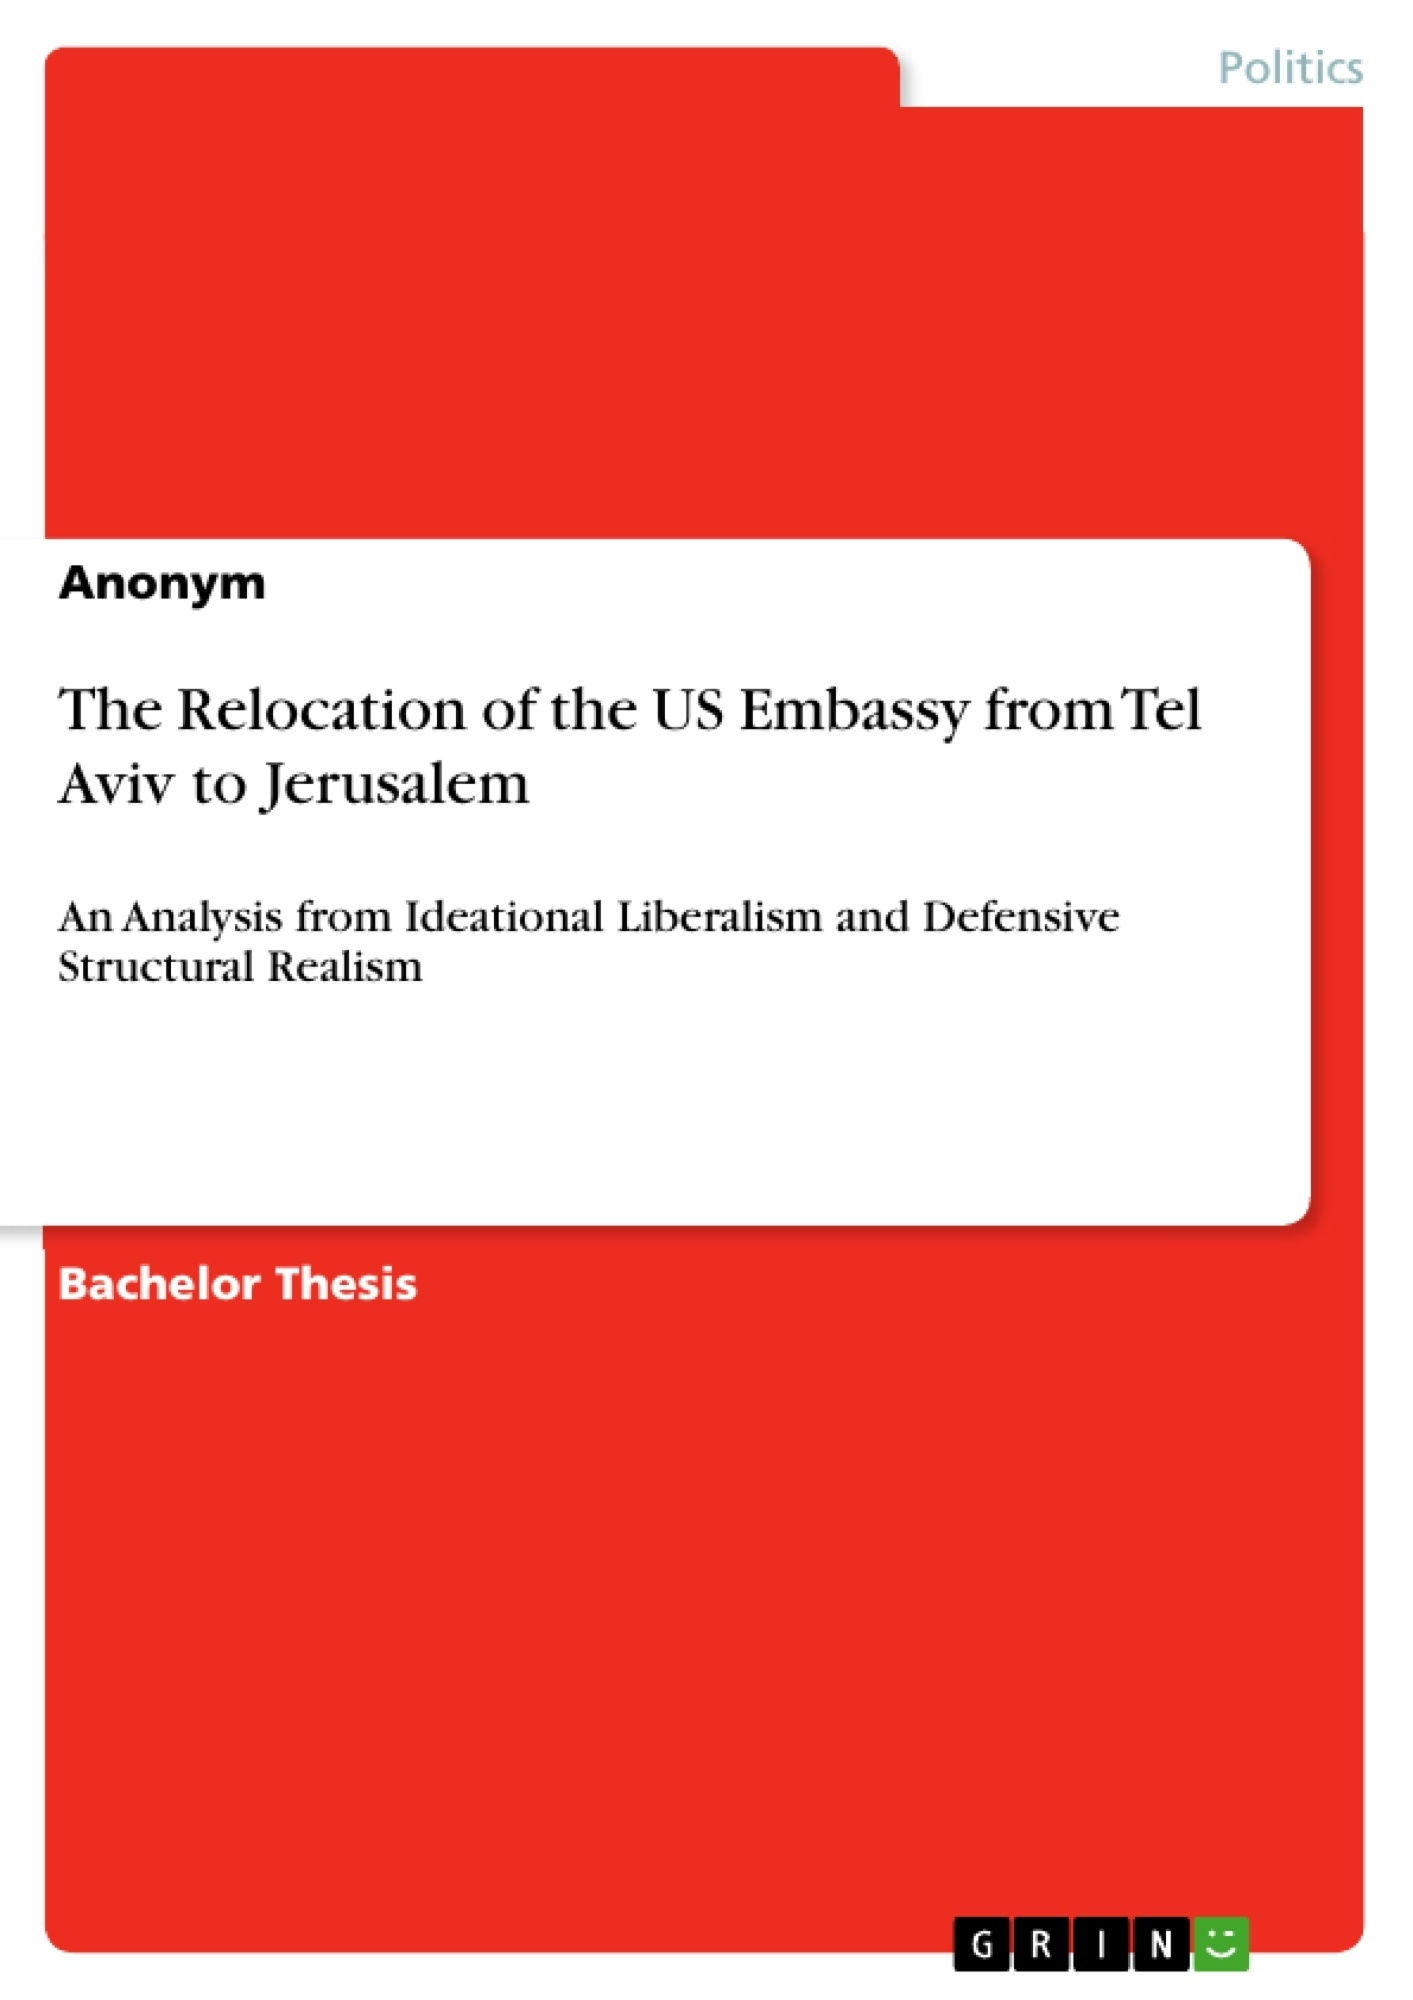 Title: The Relocation of the US Embassy from Tel Aviv to Jerusalem